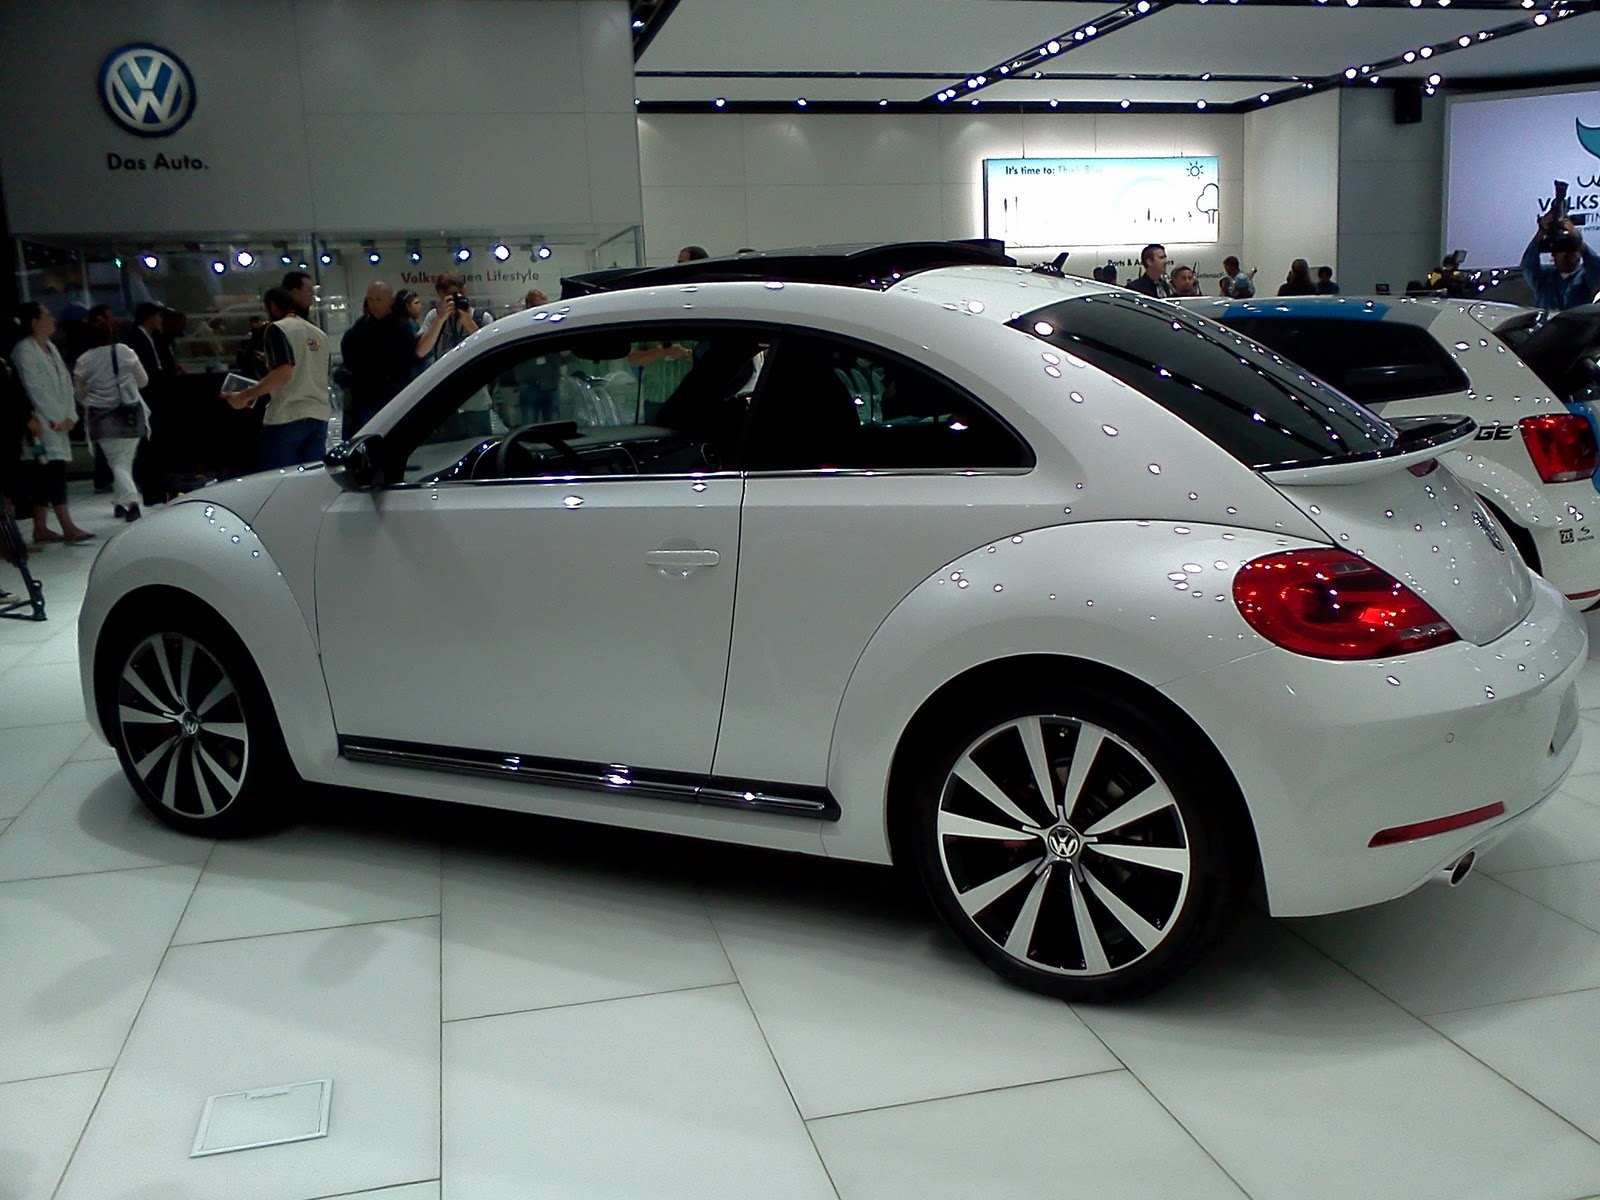 2011 volkswagen beetle 1 2 tsi related infomation specifications weili automotive network. Black Bedroom Furniture Sets. Home Design Ideas